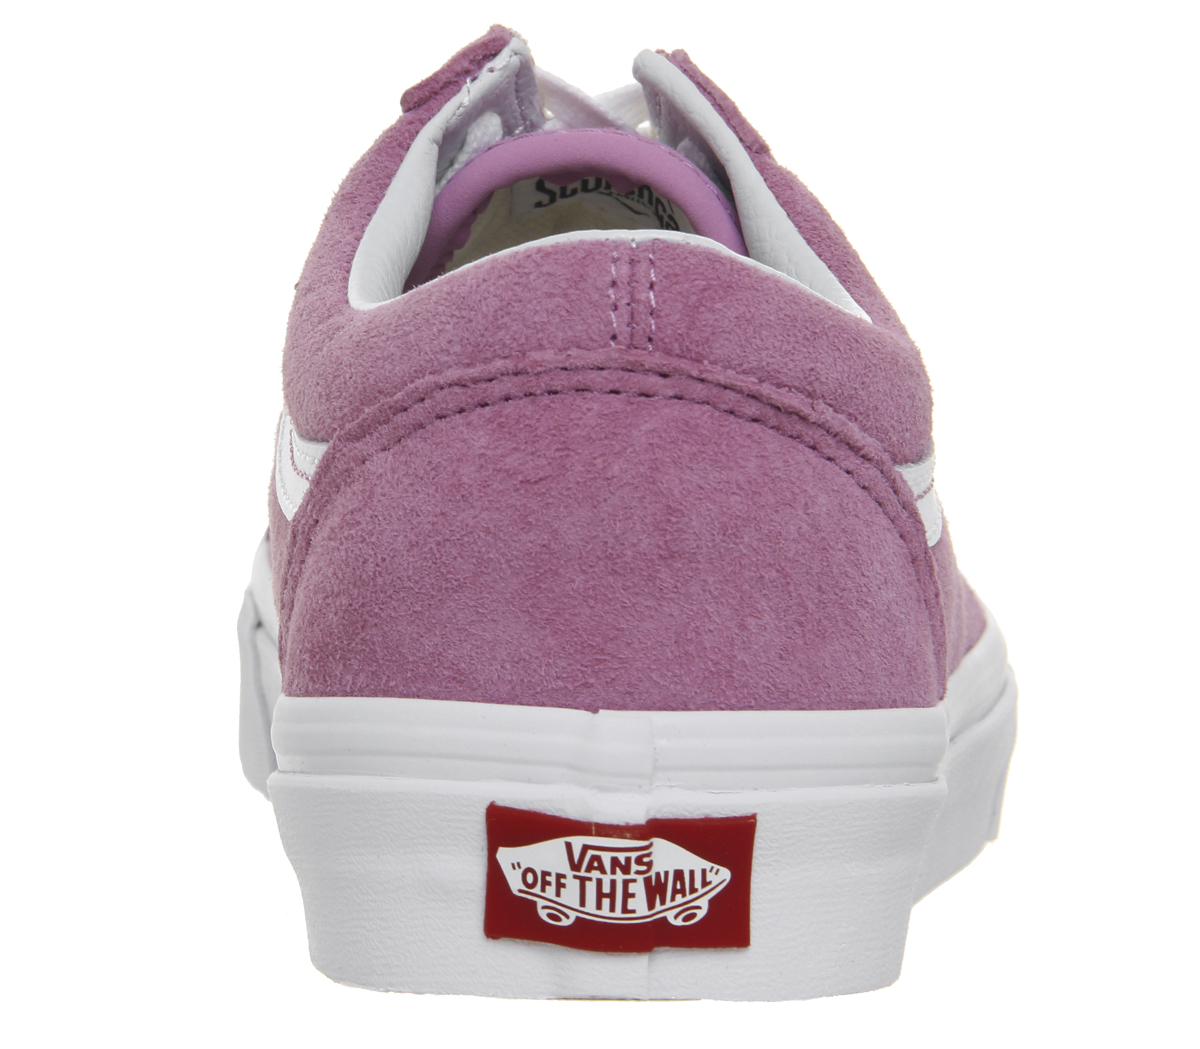 Womens-Vans-Old-Skool-Trainers-Violet-True-White-Trainers-Shoes